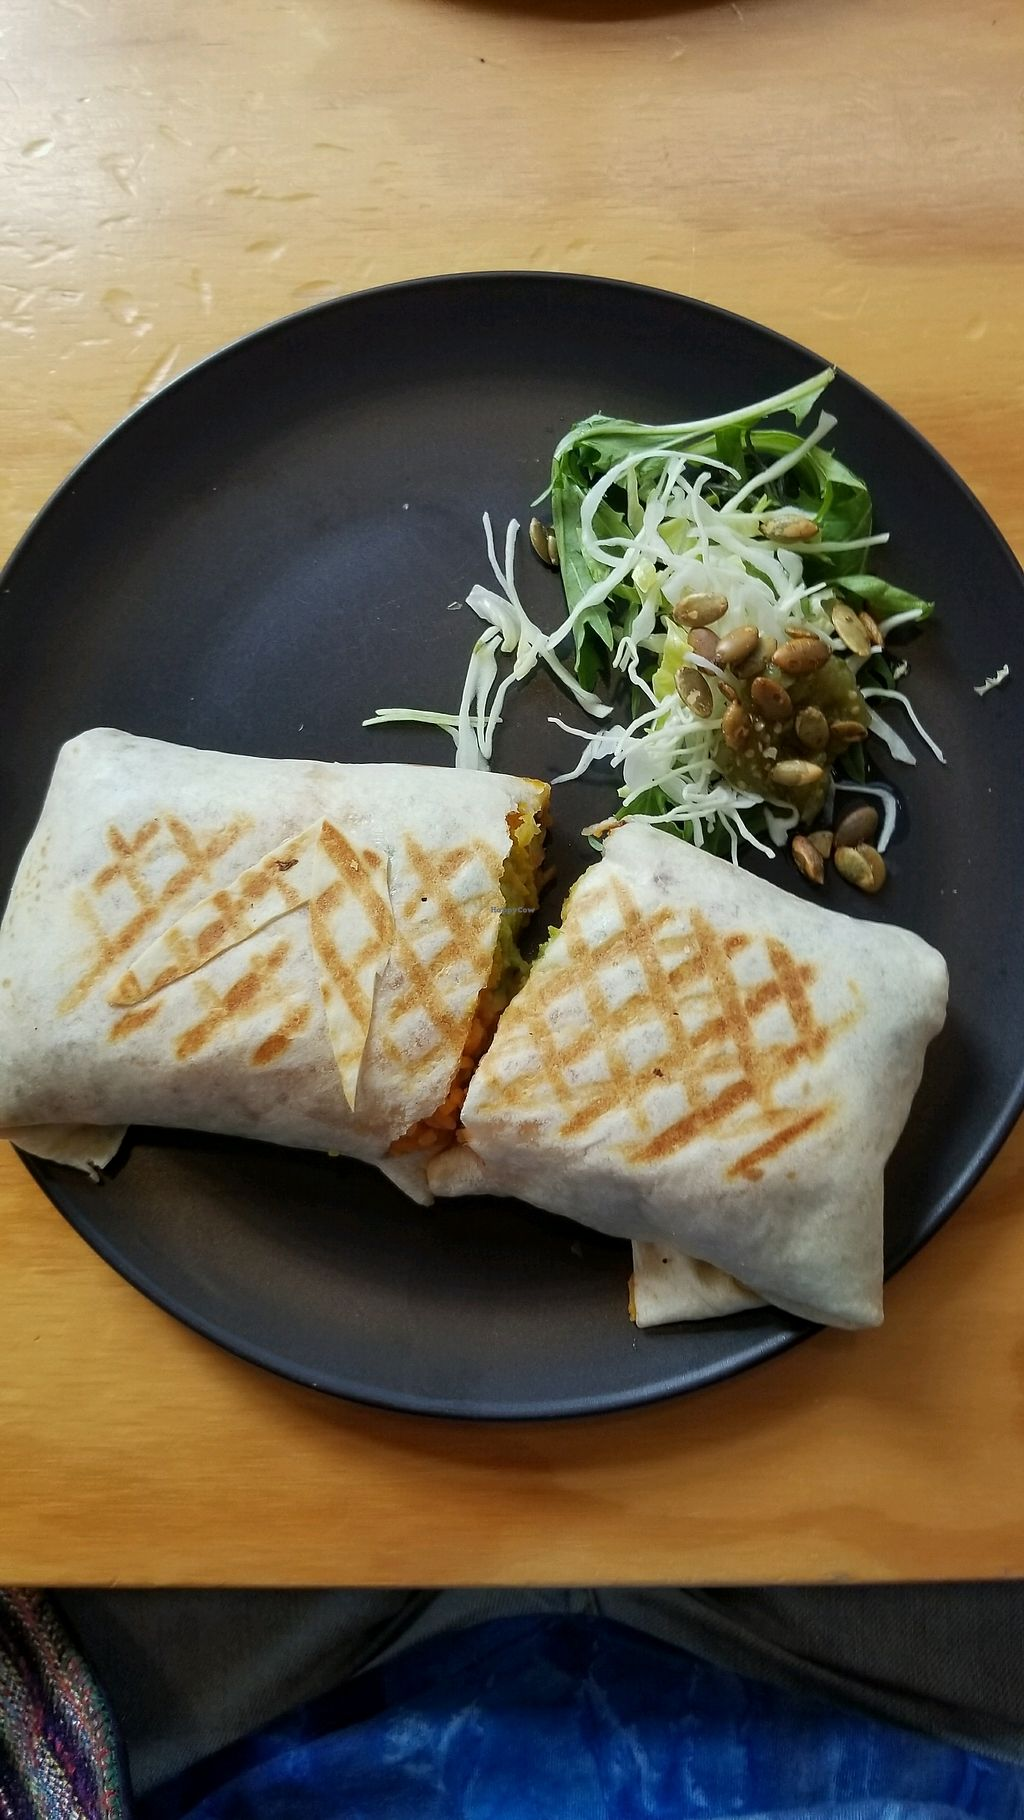 """Photo of Nicola's Cantina  by <a href=""""/members/profile/AndyTheVWDude"""">AndyTheVWDude</a> <br/>Vegan burrito ('Vege' w/out the cheese) <br/> April 13, 2018  - <a href='/contact/abuse/image/108145/385296'>Report</a>"""